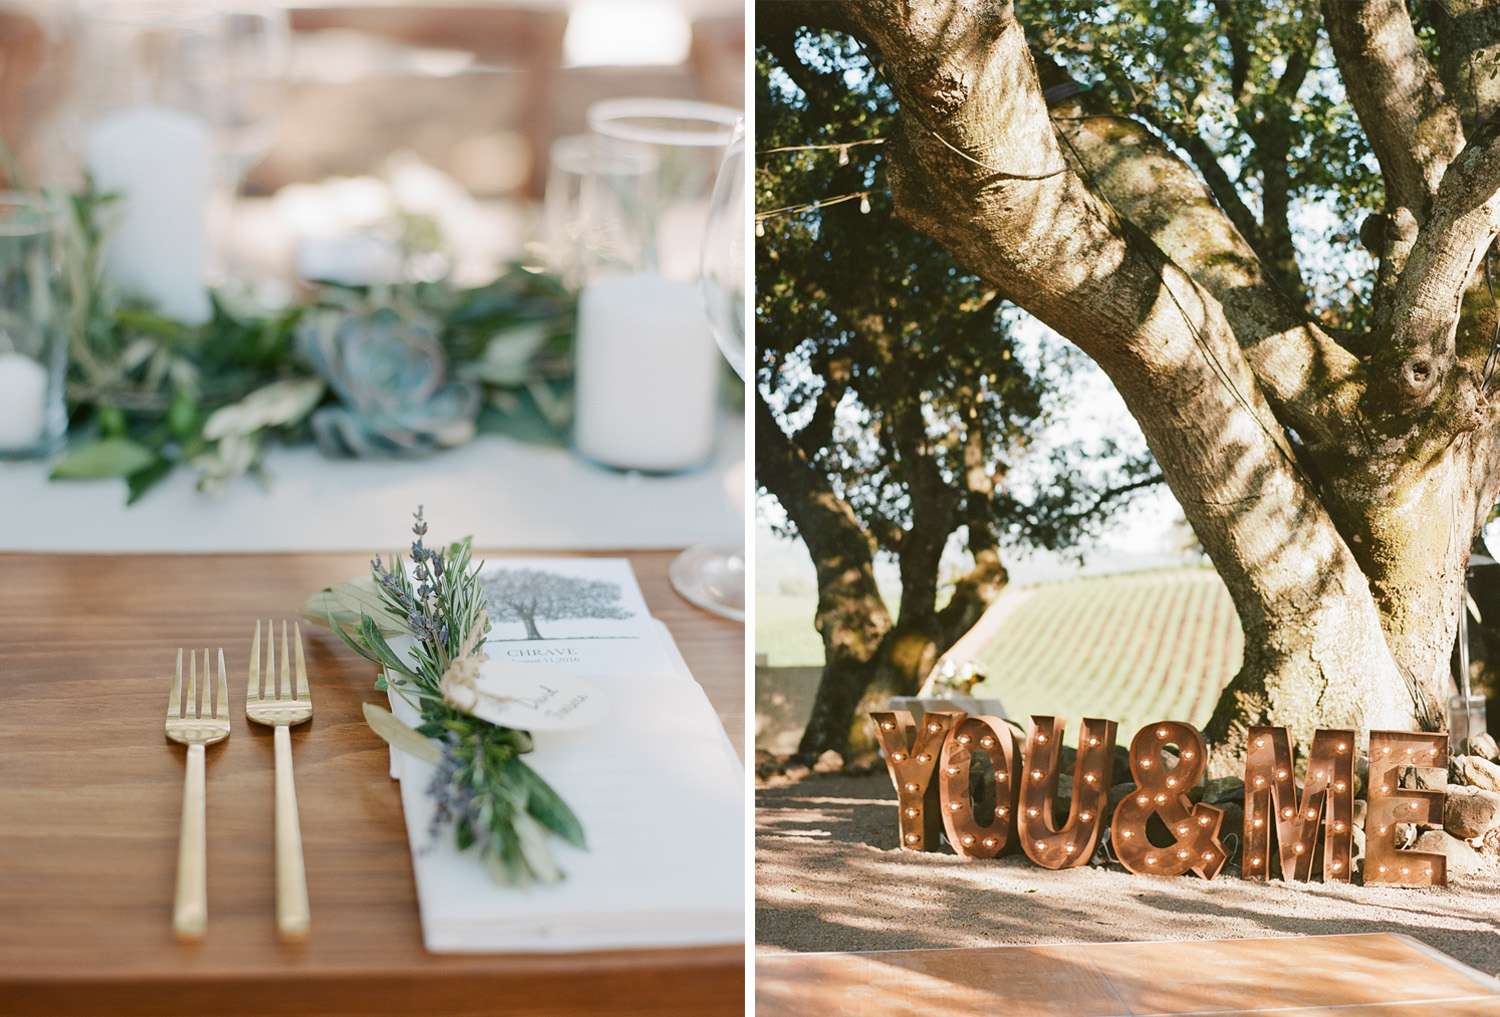 """Table settings and a decorative marquee reading """"YOU & ME"""" at a Kunde Winery wedding in Napa Valley; Sylvie Gil Photography"""